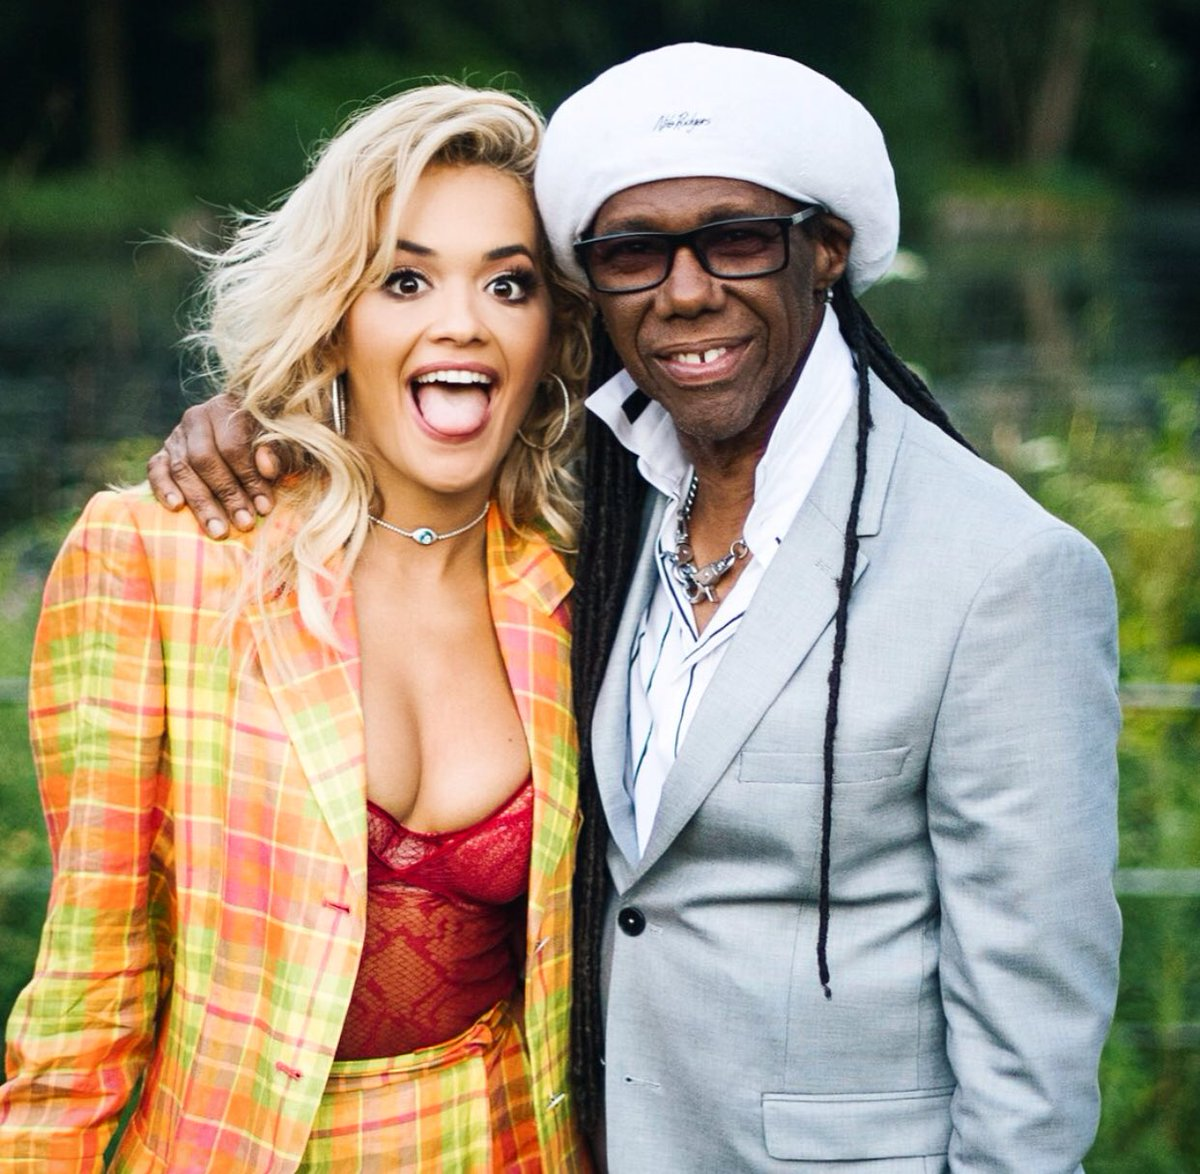 Also this happened. Thank you for blessing us with your timeless music @nilerodgers ???????????? https://t.co/1DlOlWz0yo